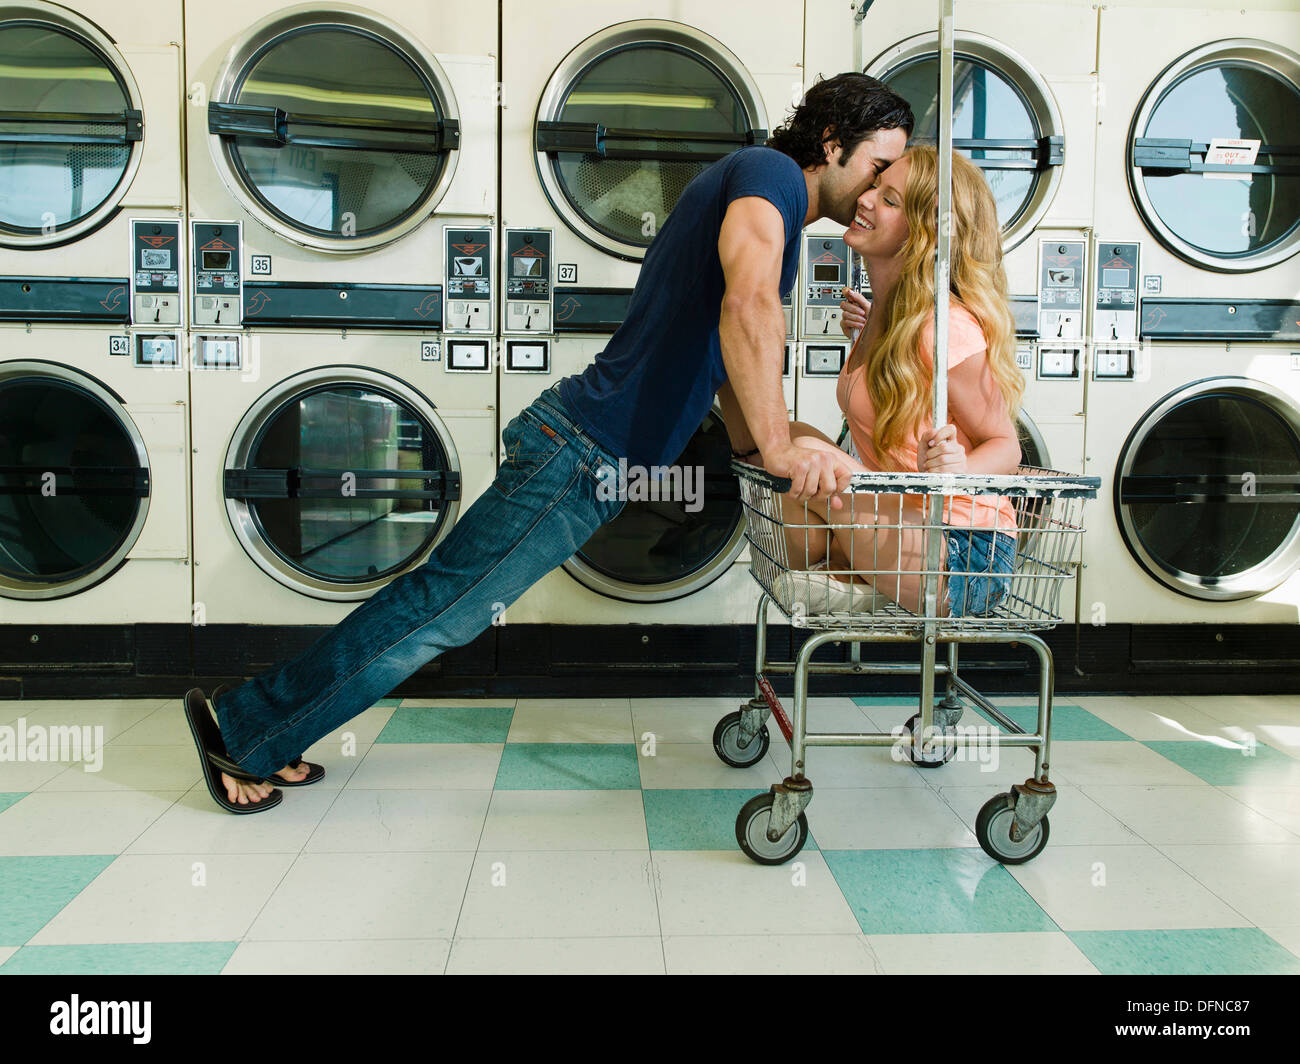 A young man leans over a pretty woman sits on a wheeled basket to kisses her chick in San Diego coin laundromat. - Stock Image